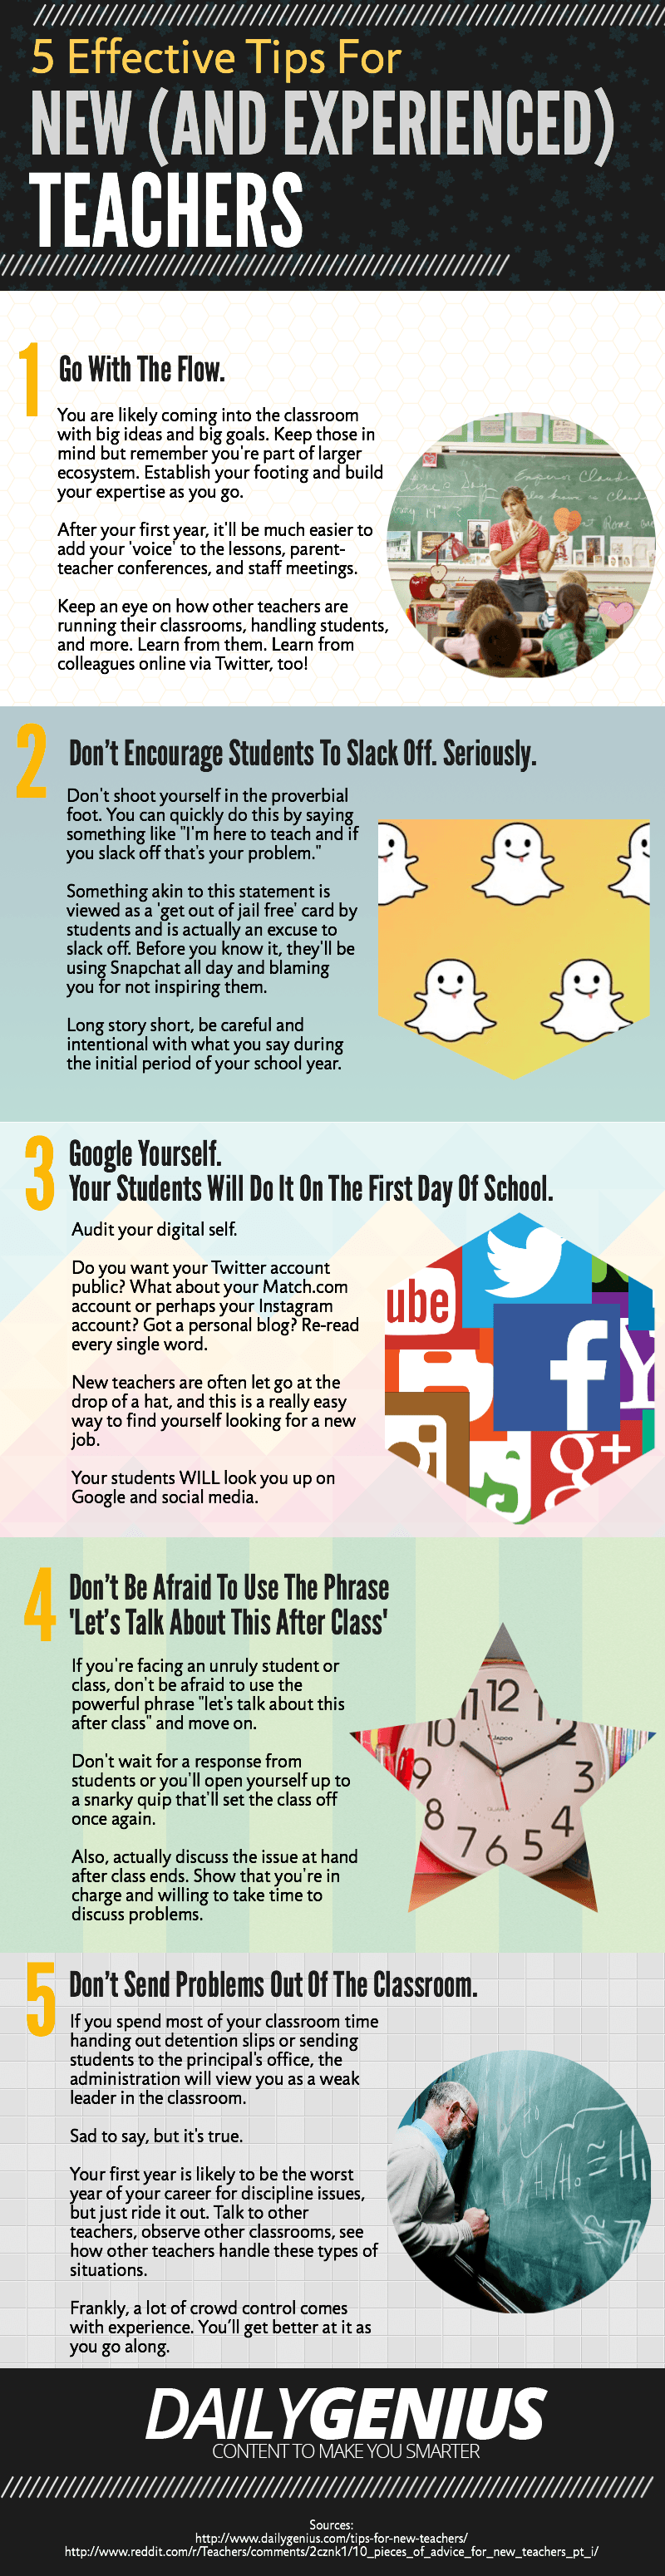 5 Tips for New Teachers Infographic